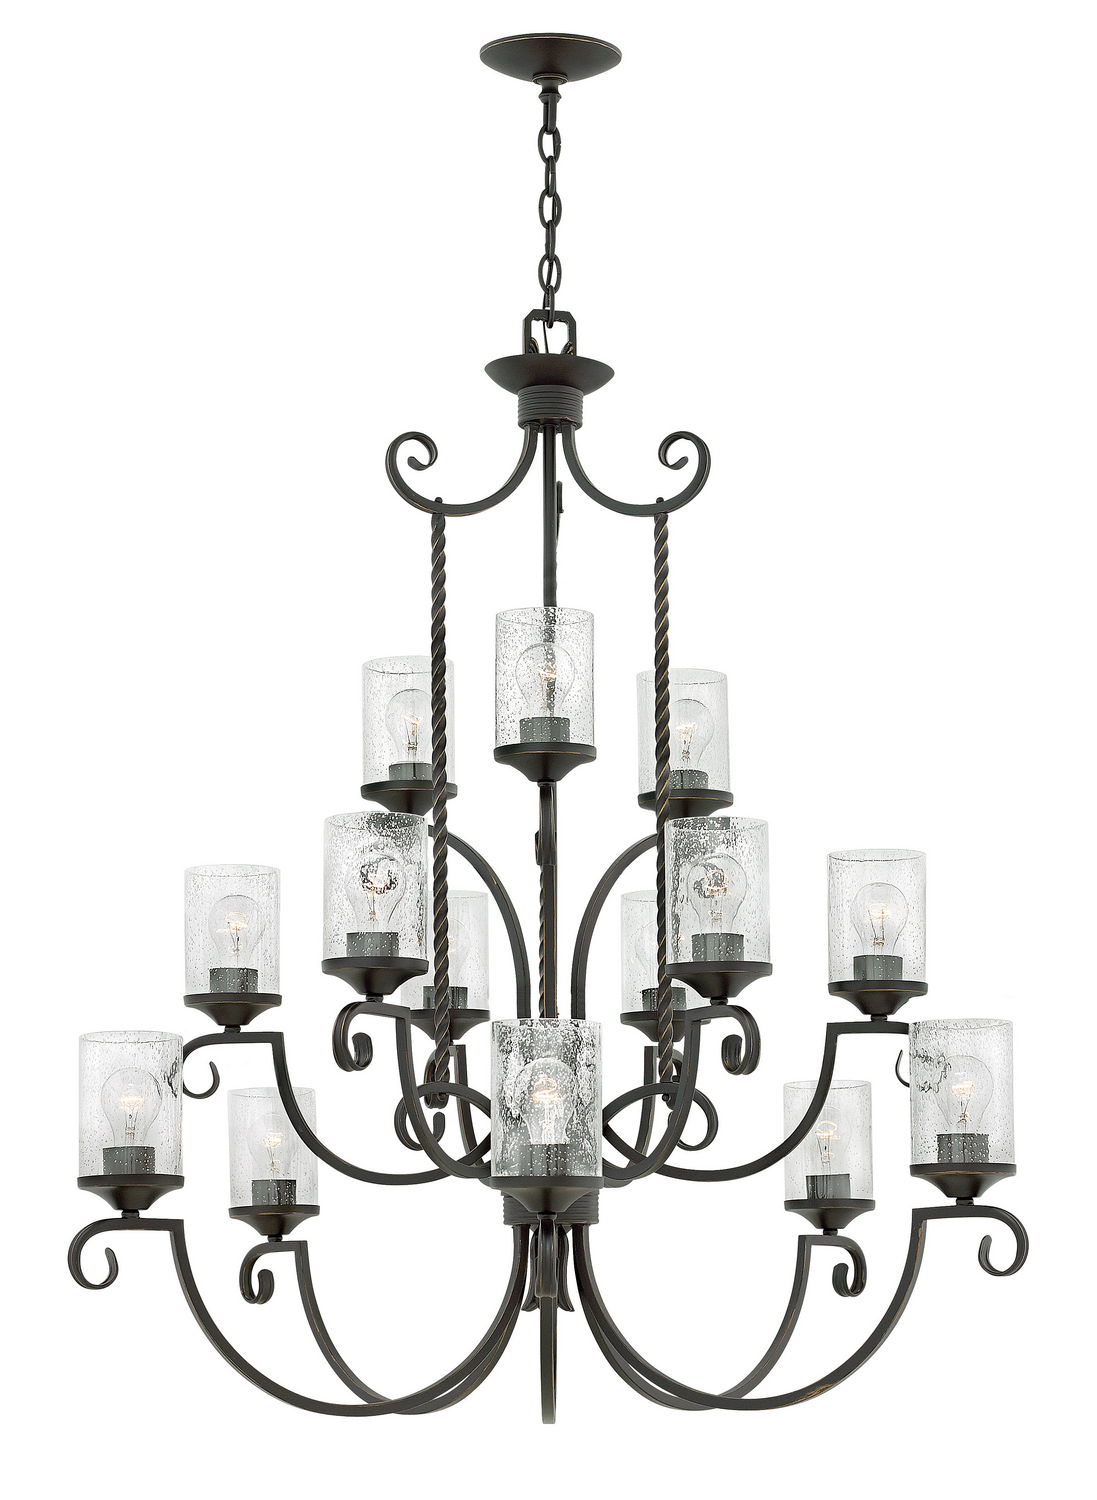 15 Light Chandelier from the Casa collection by Hinkley 4019OL CL